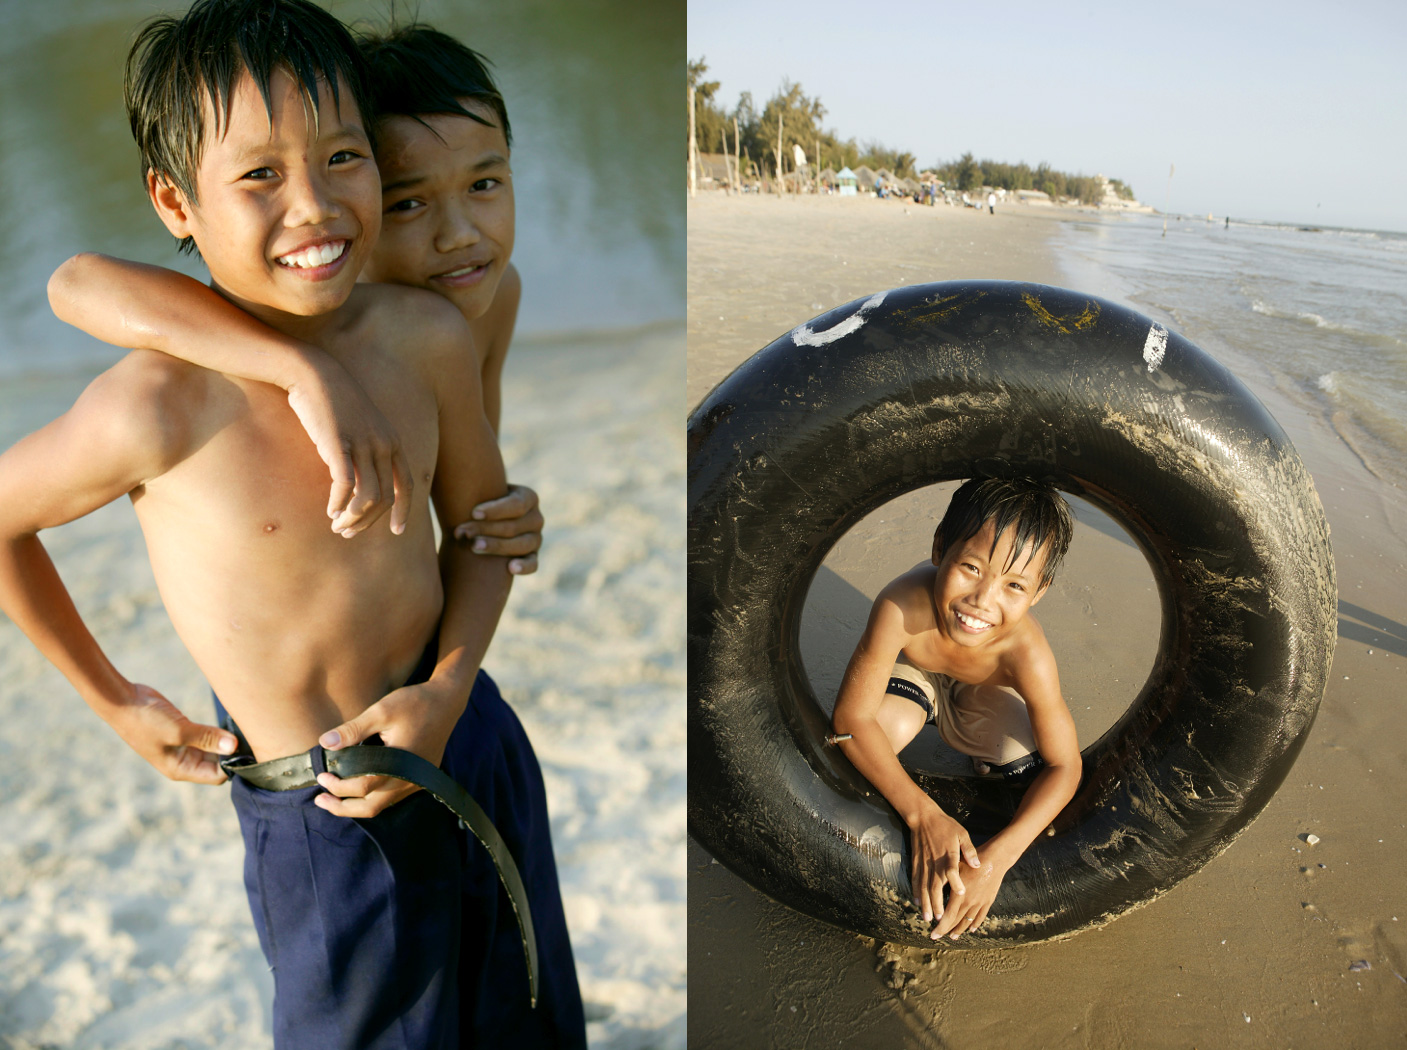 Young Vietnaese boys enjoy  beach/Steve Mason Photography